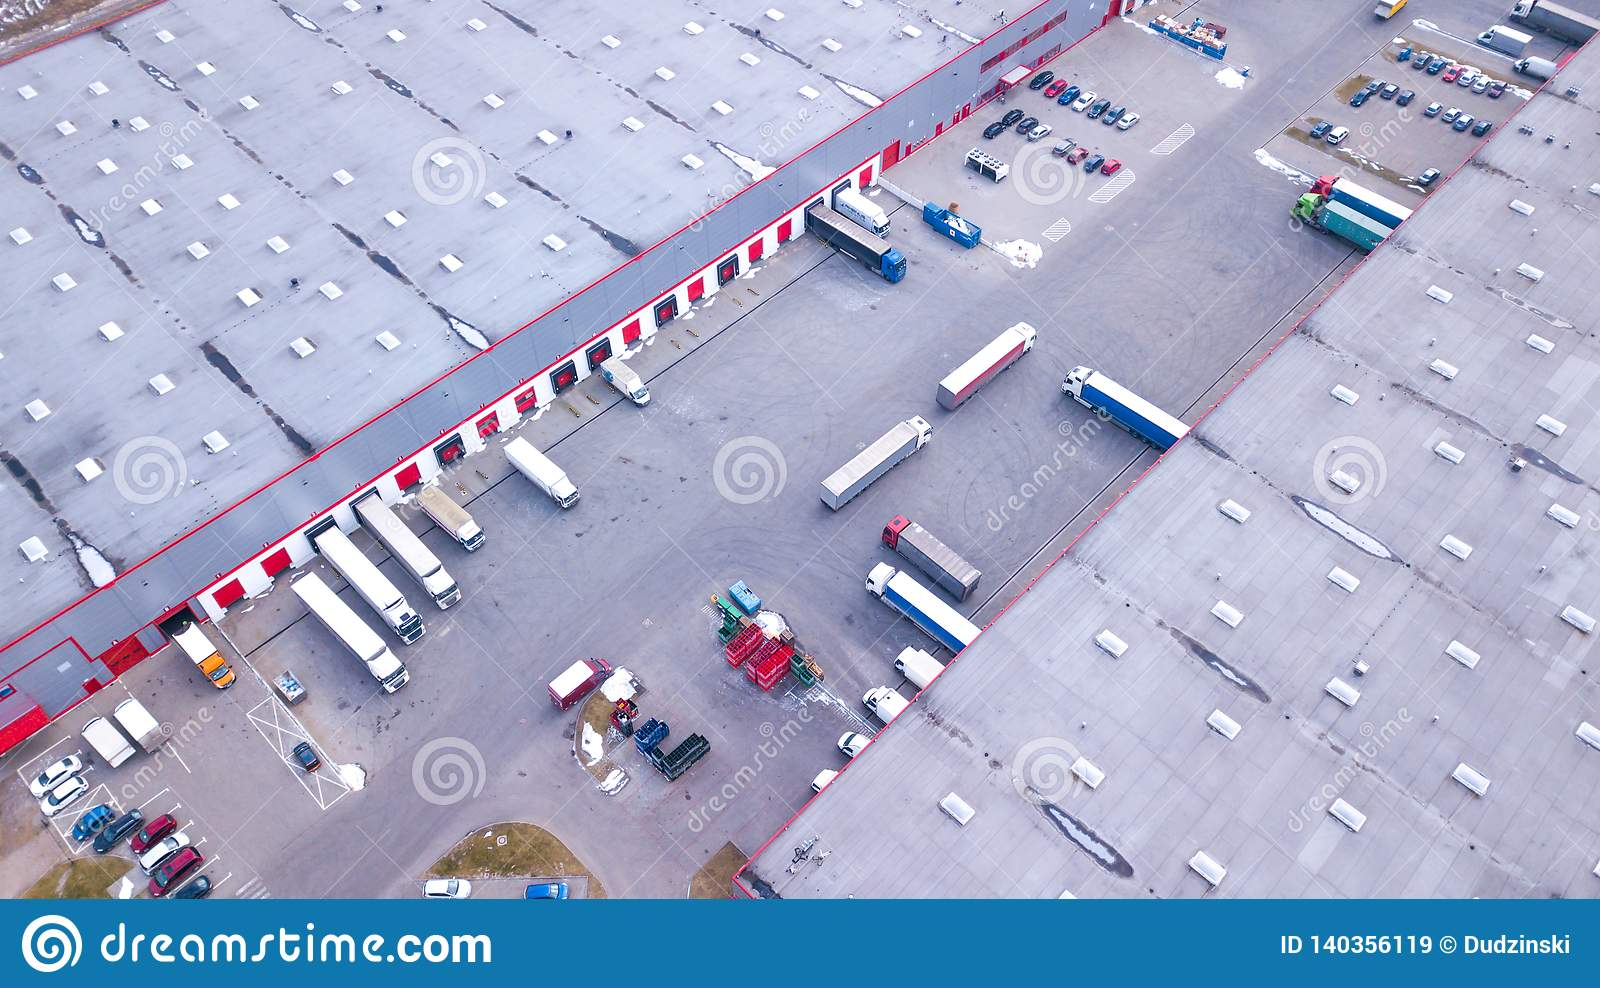 Aerial Shot Of Industrial Warehouse Loading Dock Where Many